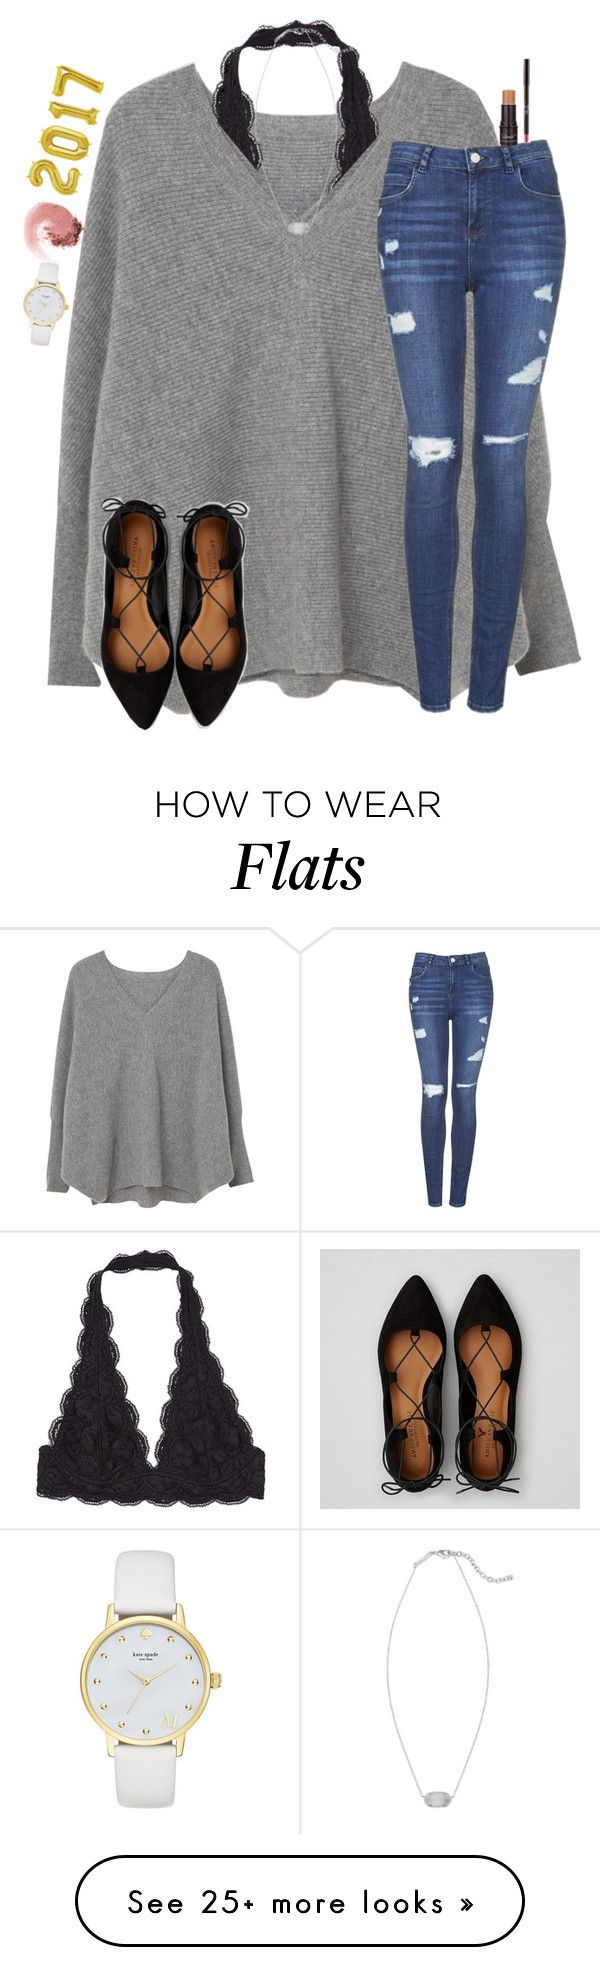 """Happy 2017 !!!!!!!"" by christyaphan on Polyvore featuring MANGO, American Eagle Outfitters, Kendra Scott, Topshop, NARS Cosmetics and Kate Spade"